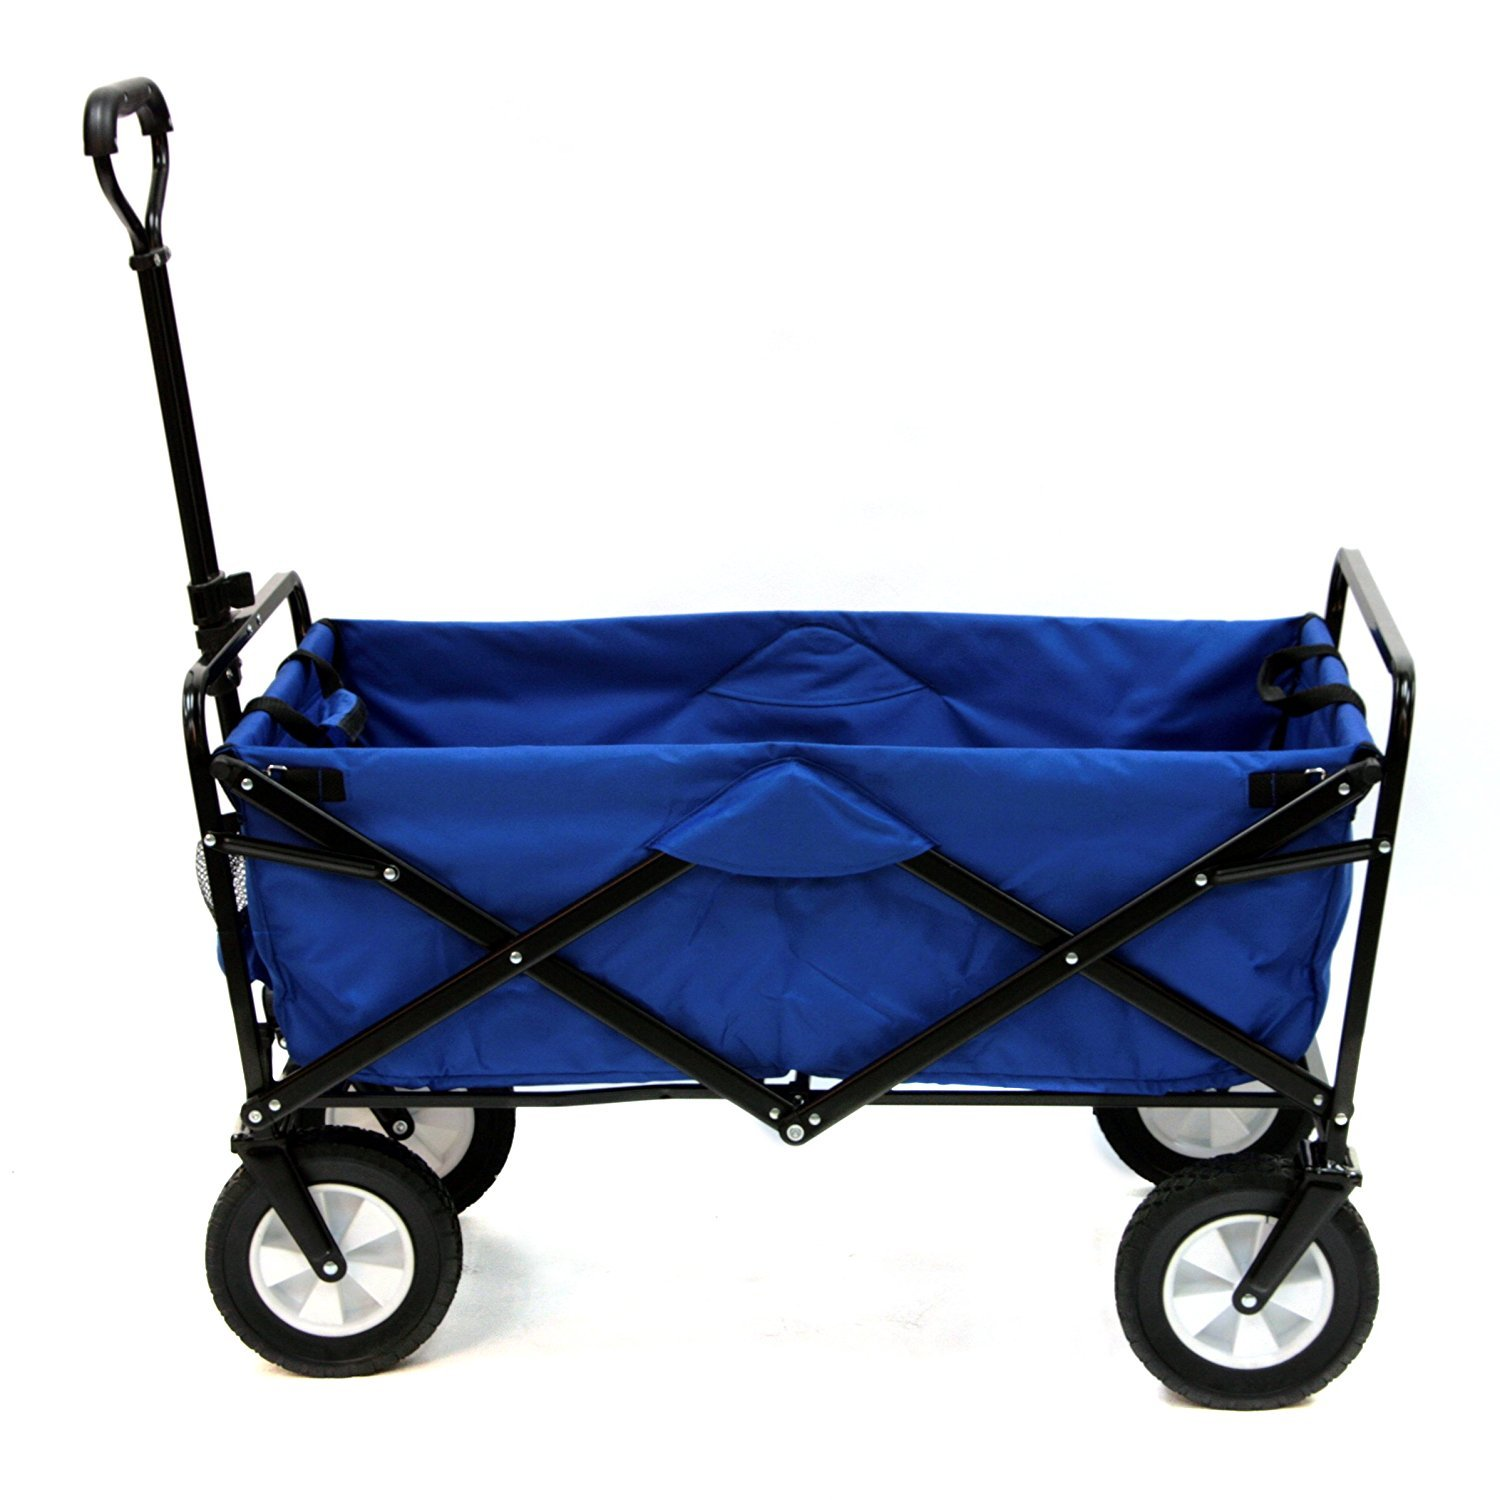 MEDA Collapsible Folding Outdoor Utility Wagon Cart (Blue)